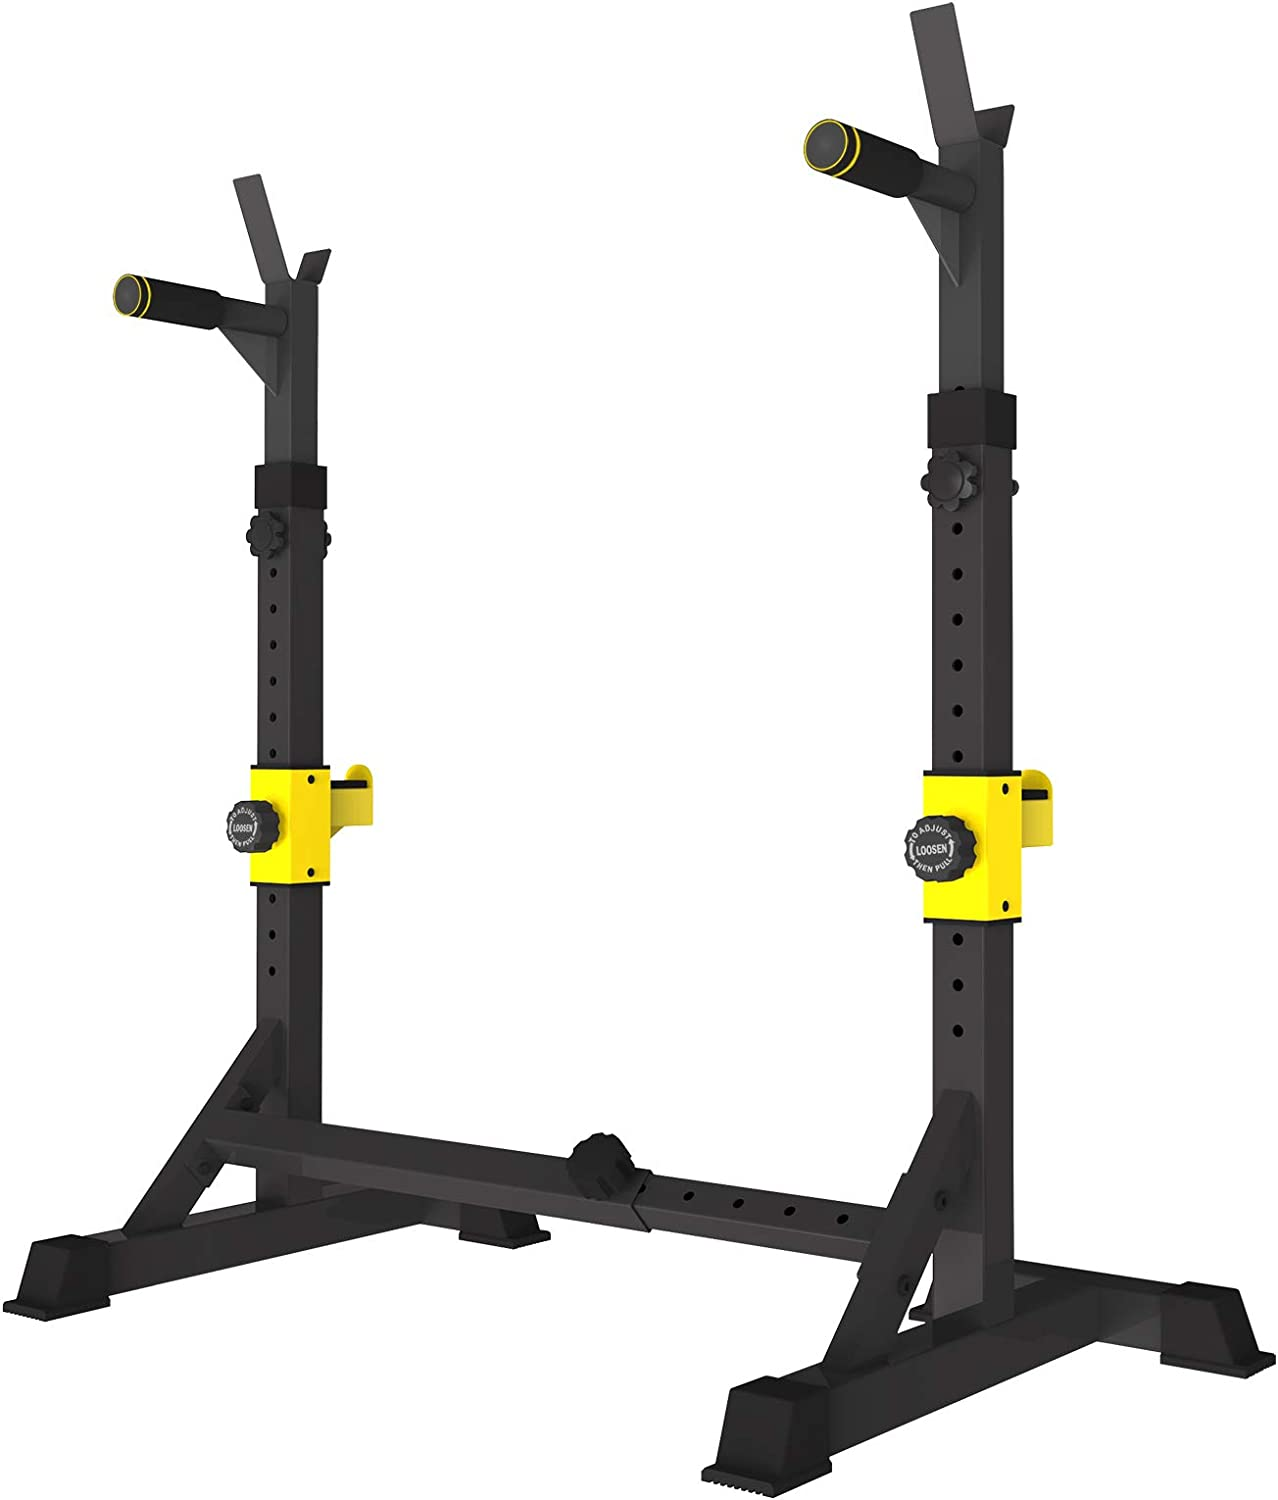 Weight Bench Adjustable Barbell Rack Free Shipping Brand New Condition